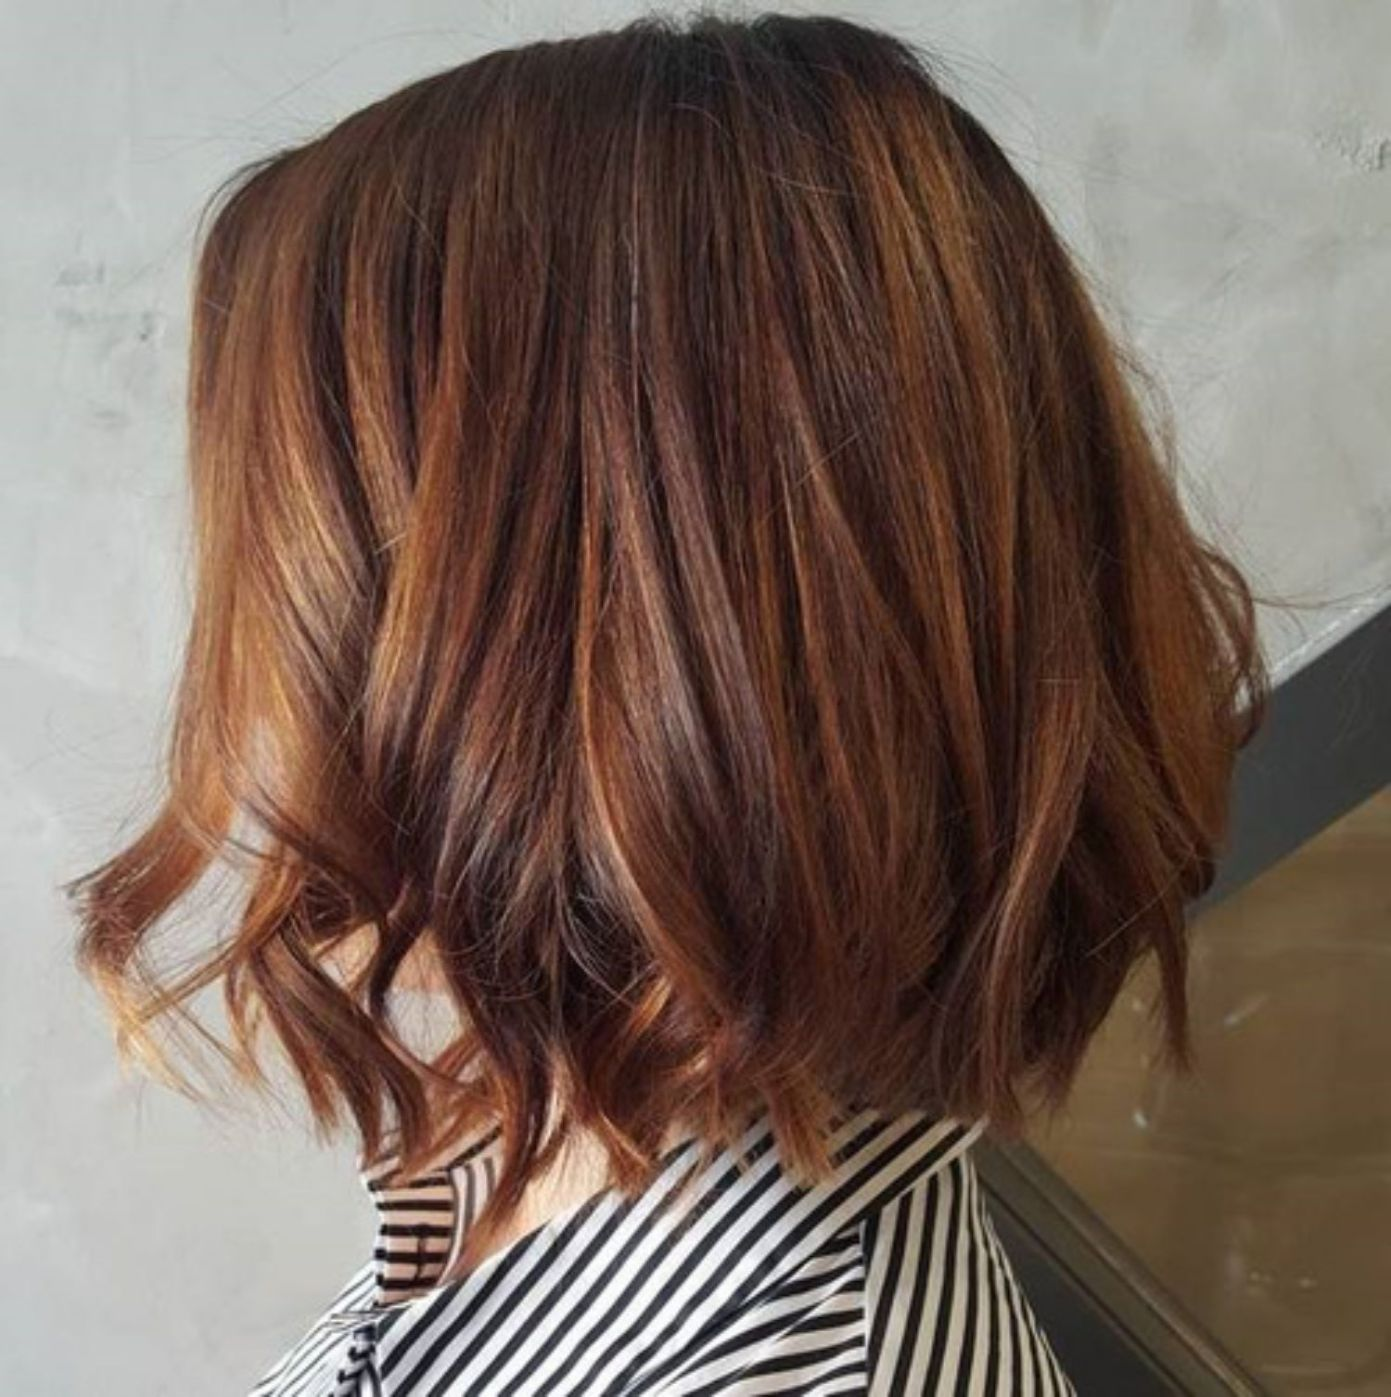 60 Looks With Caramel Highlights On Brown And Dark Brown Hair In 2020 Auburn Balayage Copper Brown Hair Hair Highlights